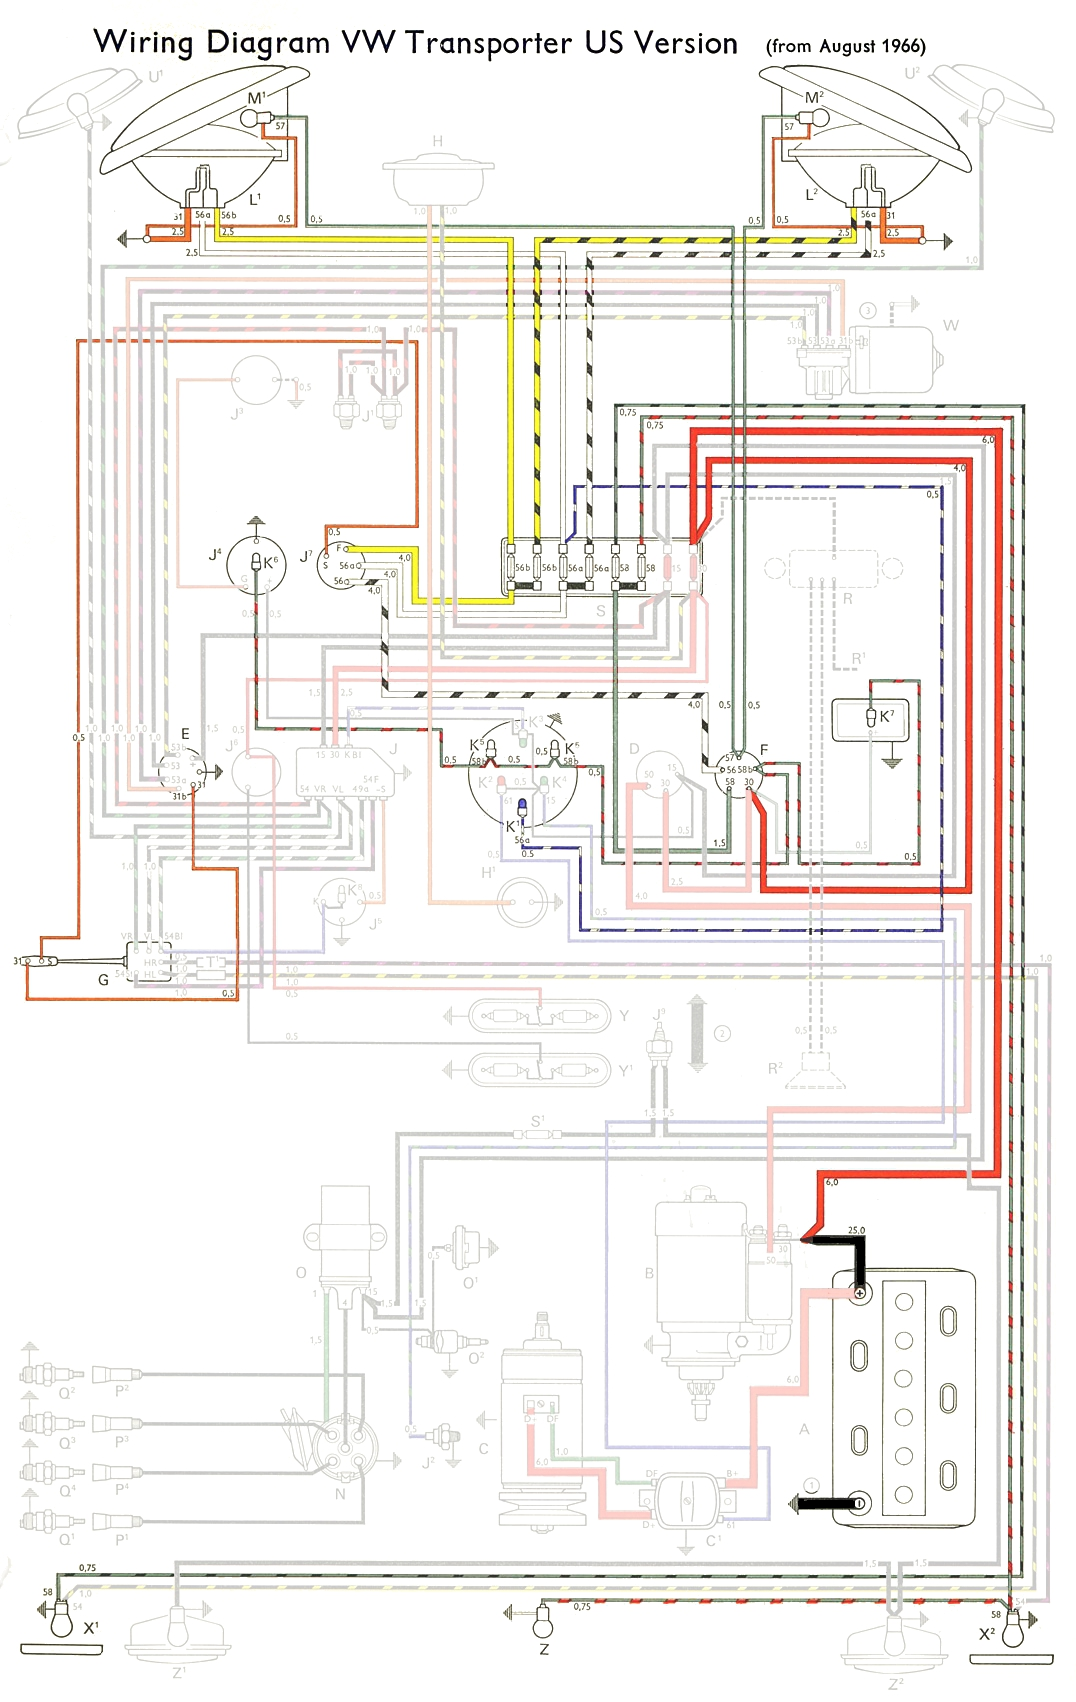 vw transporter electrical wiring diagram images 2001 1967 vw wiring diagram thesamba com type 2 wiring diagrams